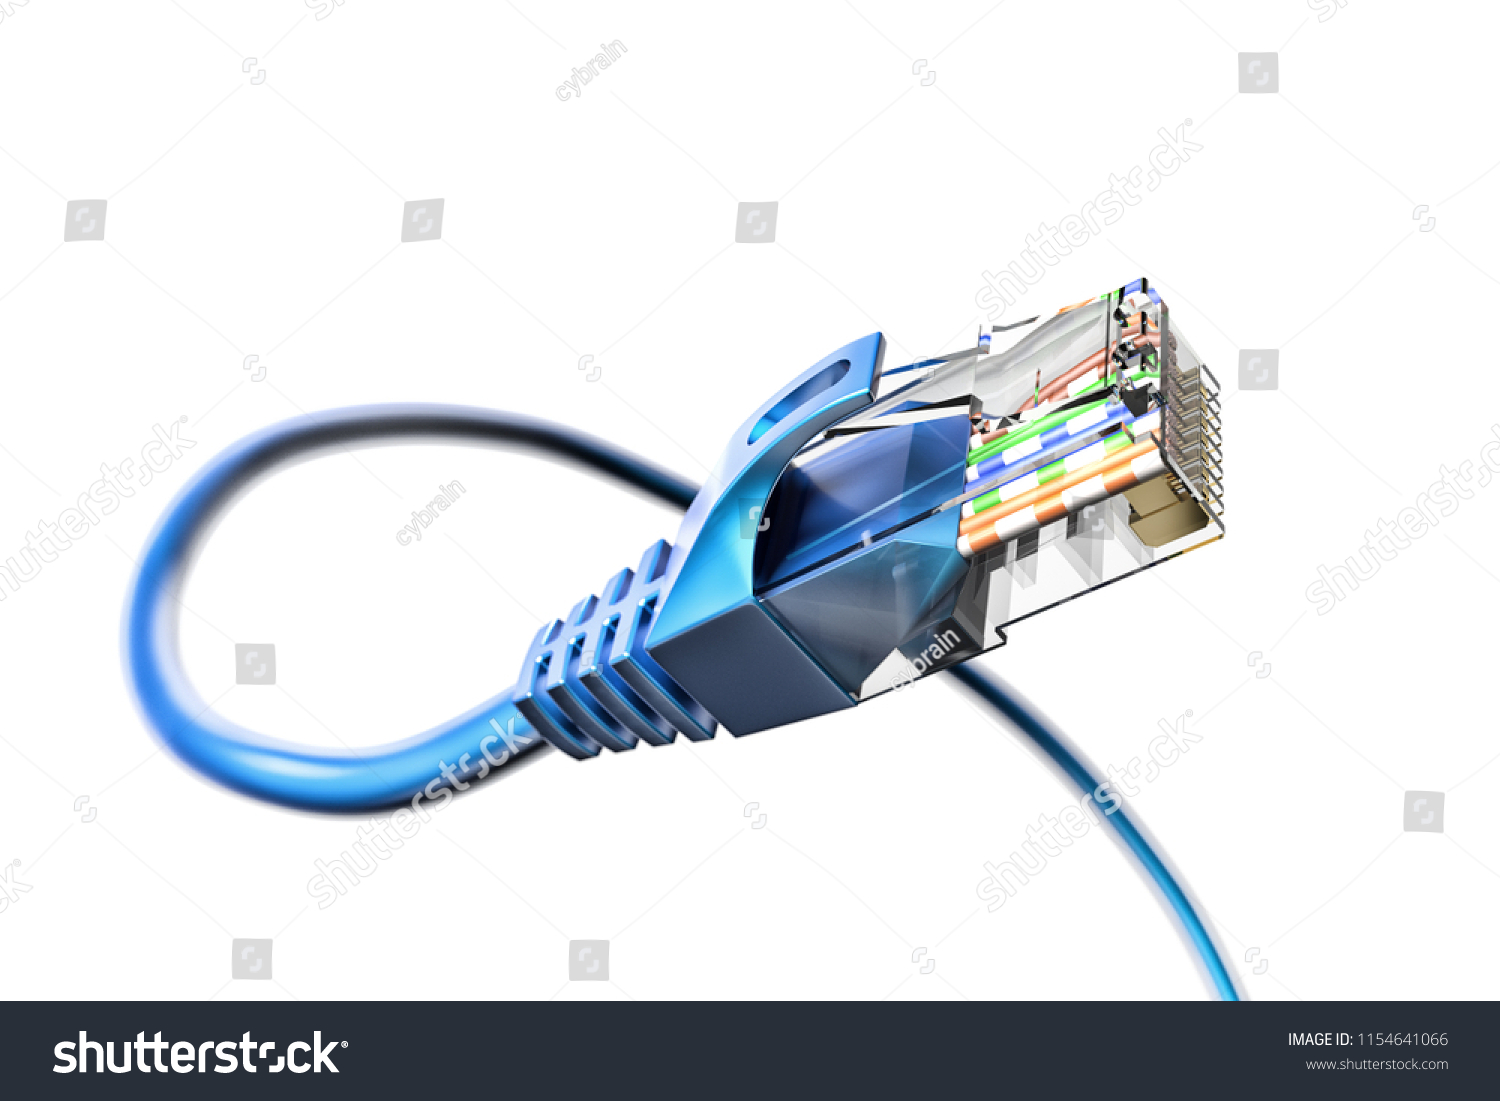 Network Connection Internet Communication Computer Technology Stock Ethernet Cable Plug Wiring Diagram And Concept Closeup View Of Curved